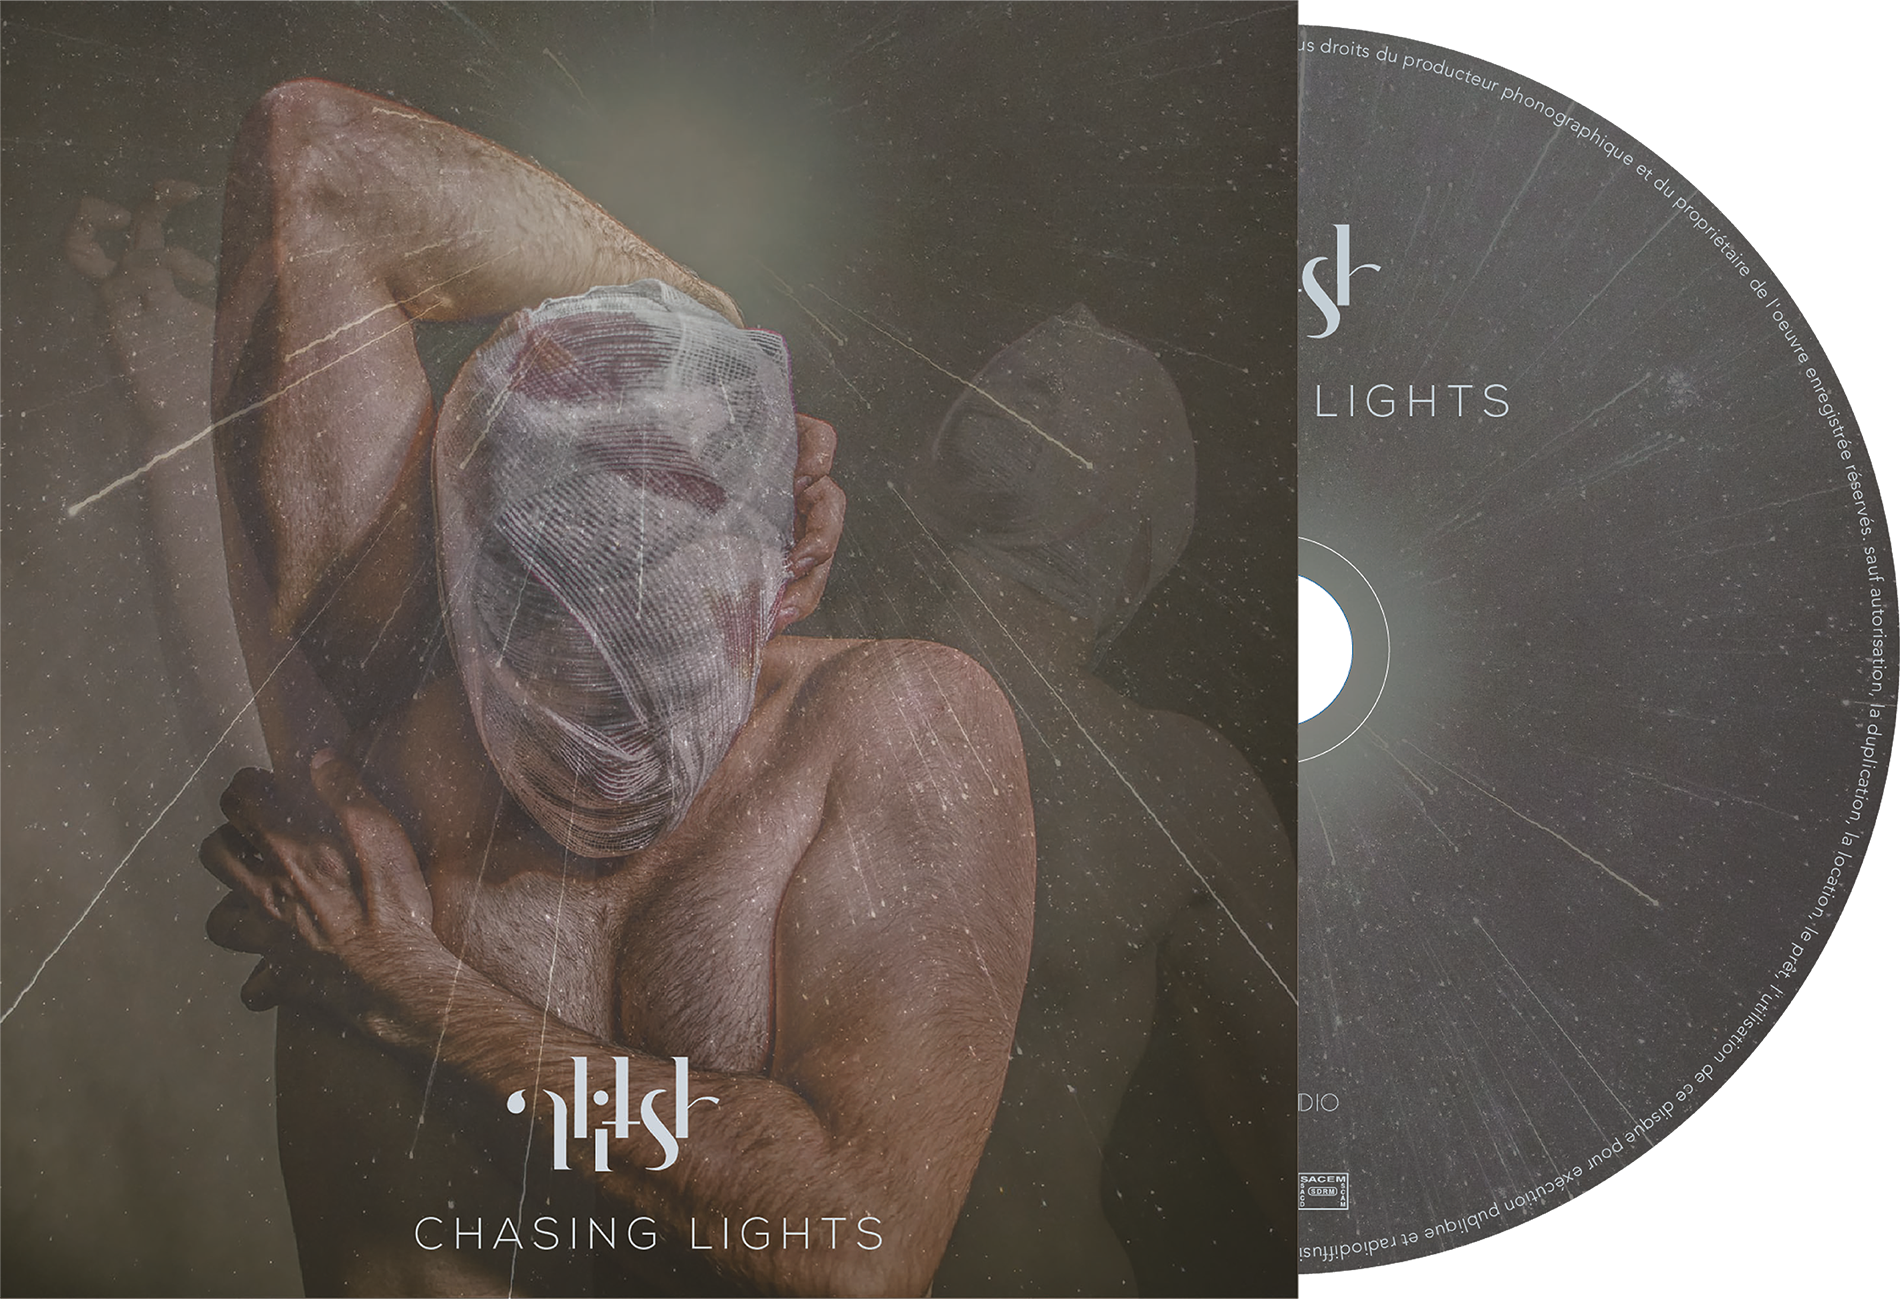 Chasing_lights artwork and CD